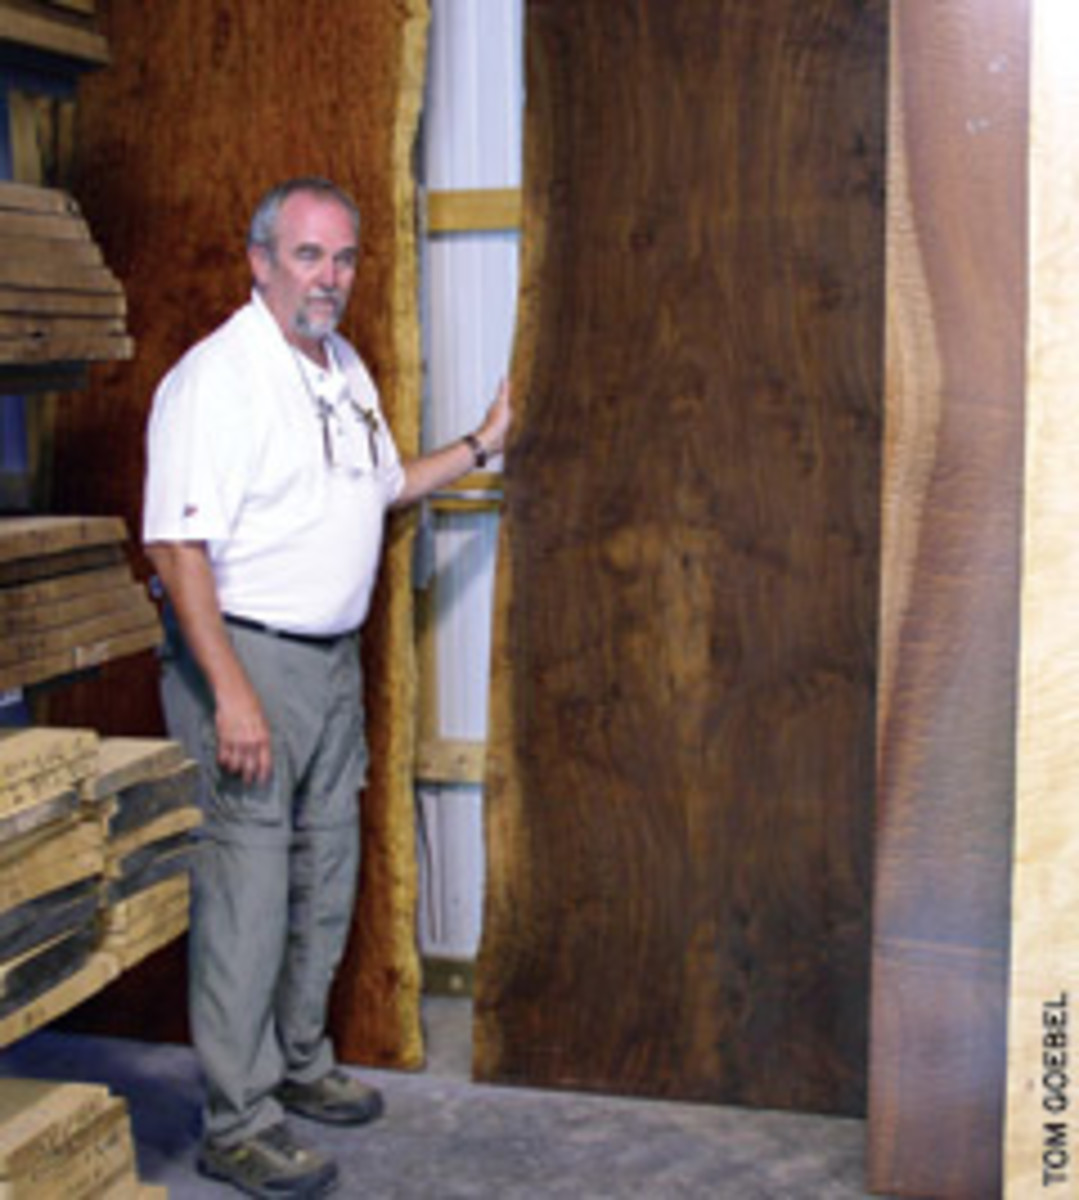 Corlis with some prized wood slabs.